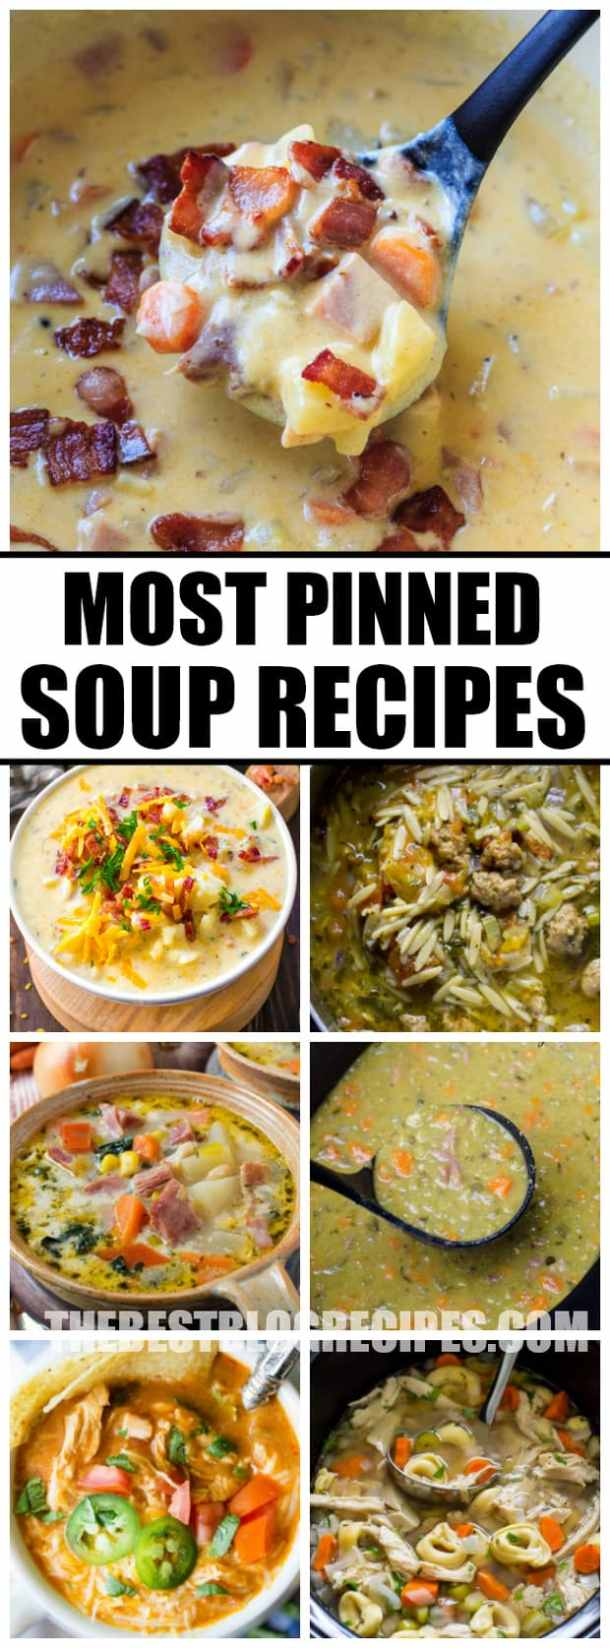 Most Pinned Soup Recipes